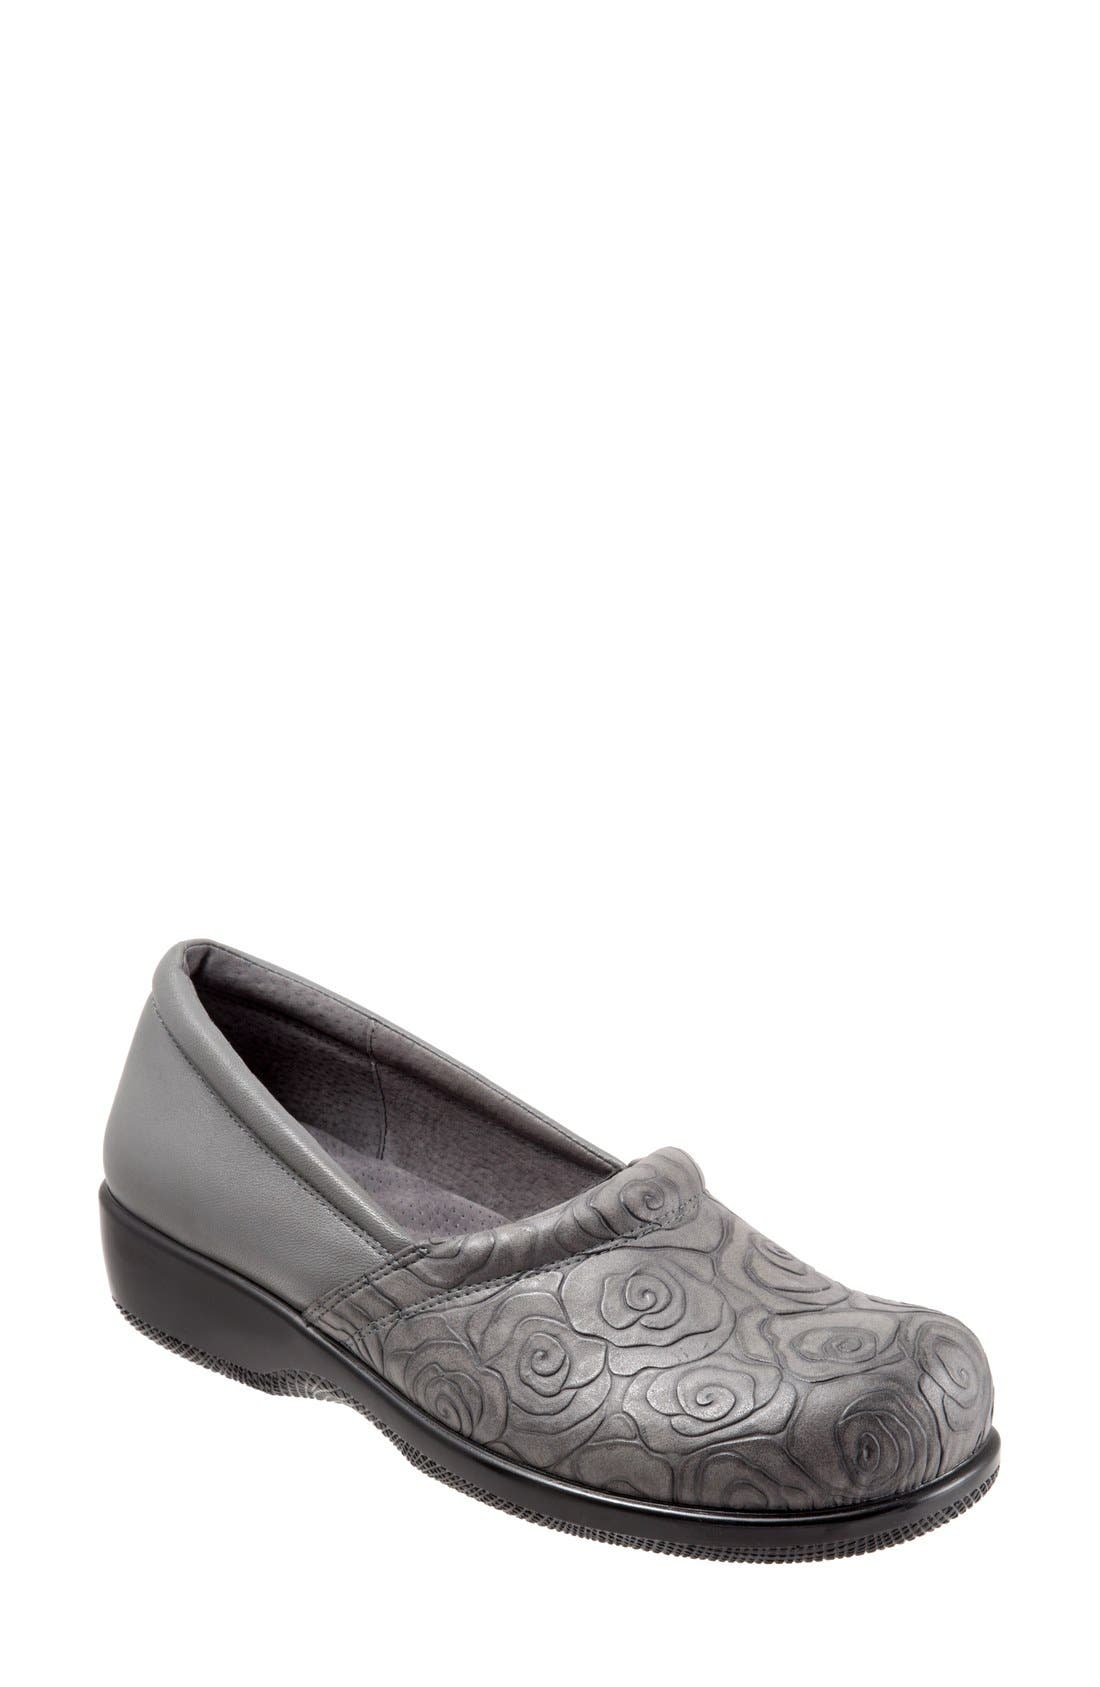 'Adora' Slip-On,                             Main thumbnail 1, color,                             GREY ROSE LEATHER